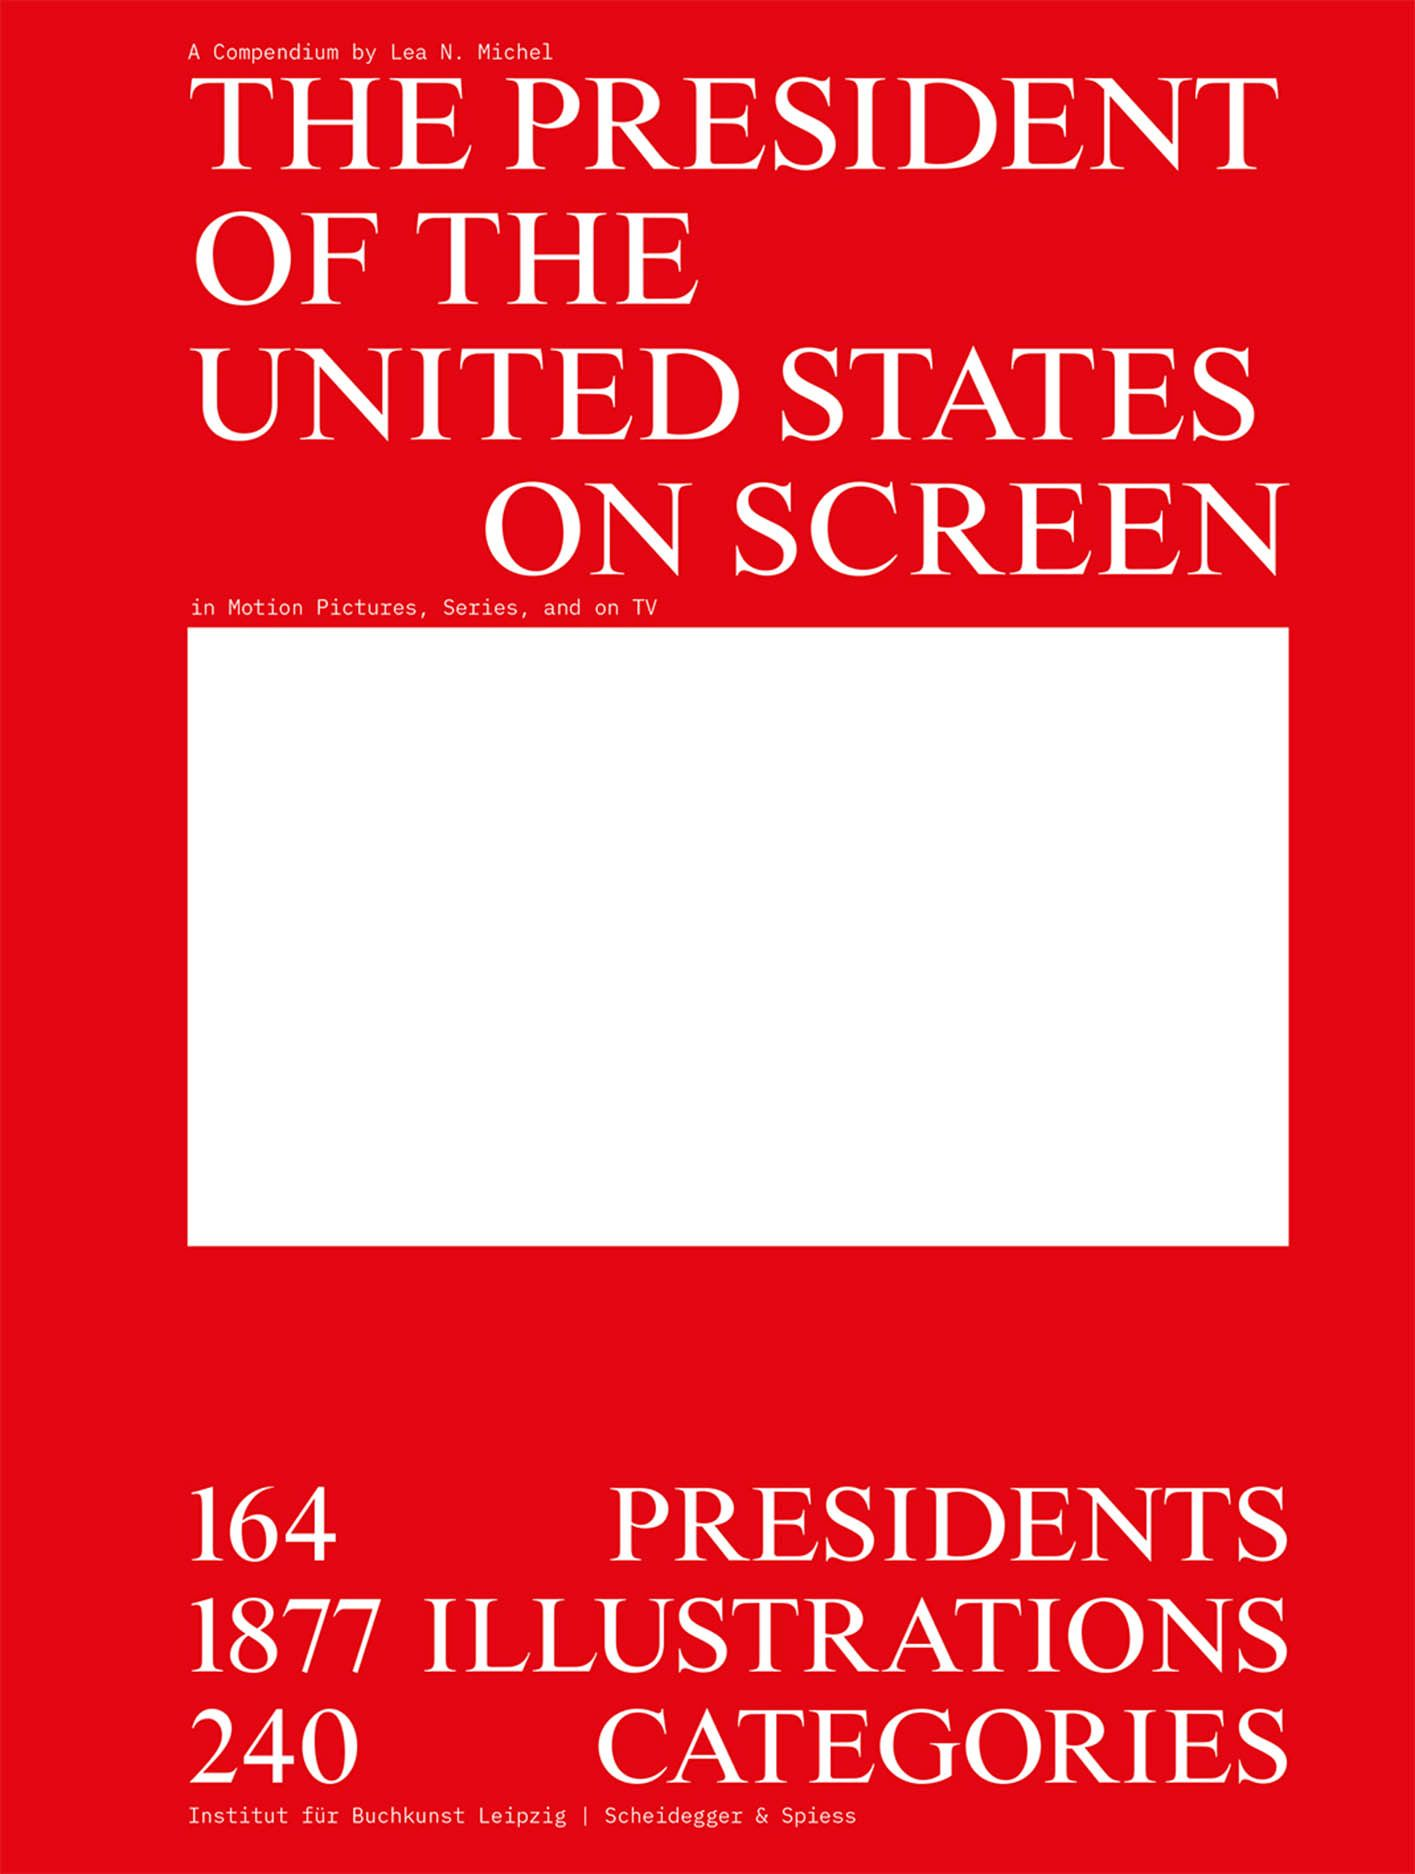 The President of the United States on Screen: 164 Presidents, 1877 Illustrations, 240 Categories